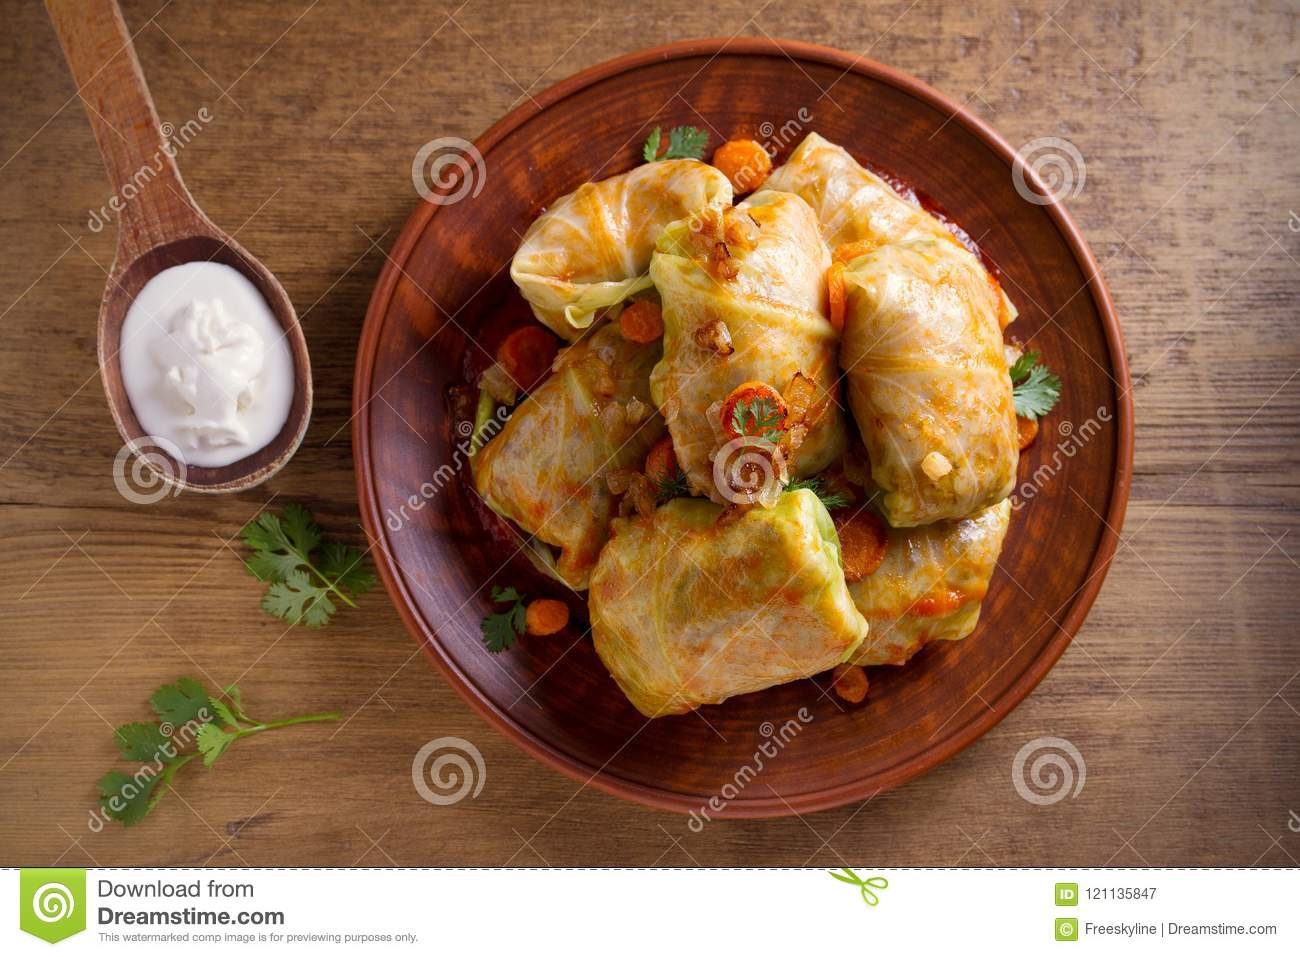 Stuffed cabbage leaves with meat, rice and vegetables. Chou farci, dolma, sarma, sarmale, golubtsy or golabki - popular dish in ma